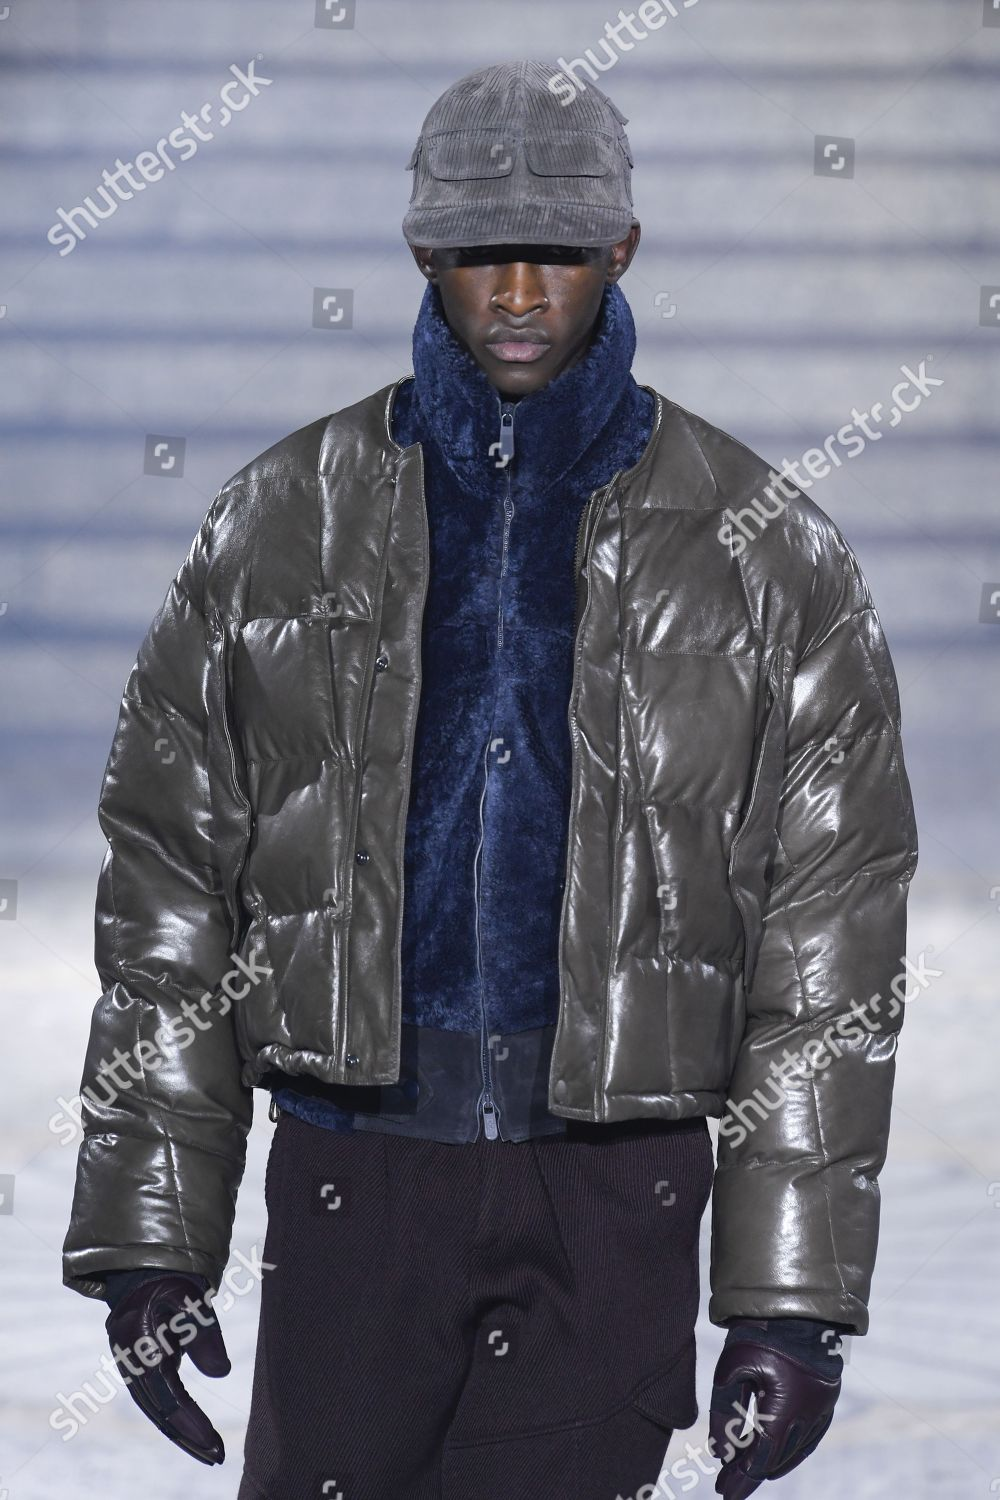 2a09caf18c Model on catwalk Editorial Stock Photo - Stock Image   Shutterstock